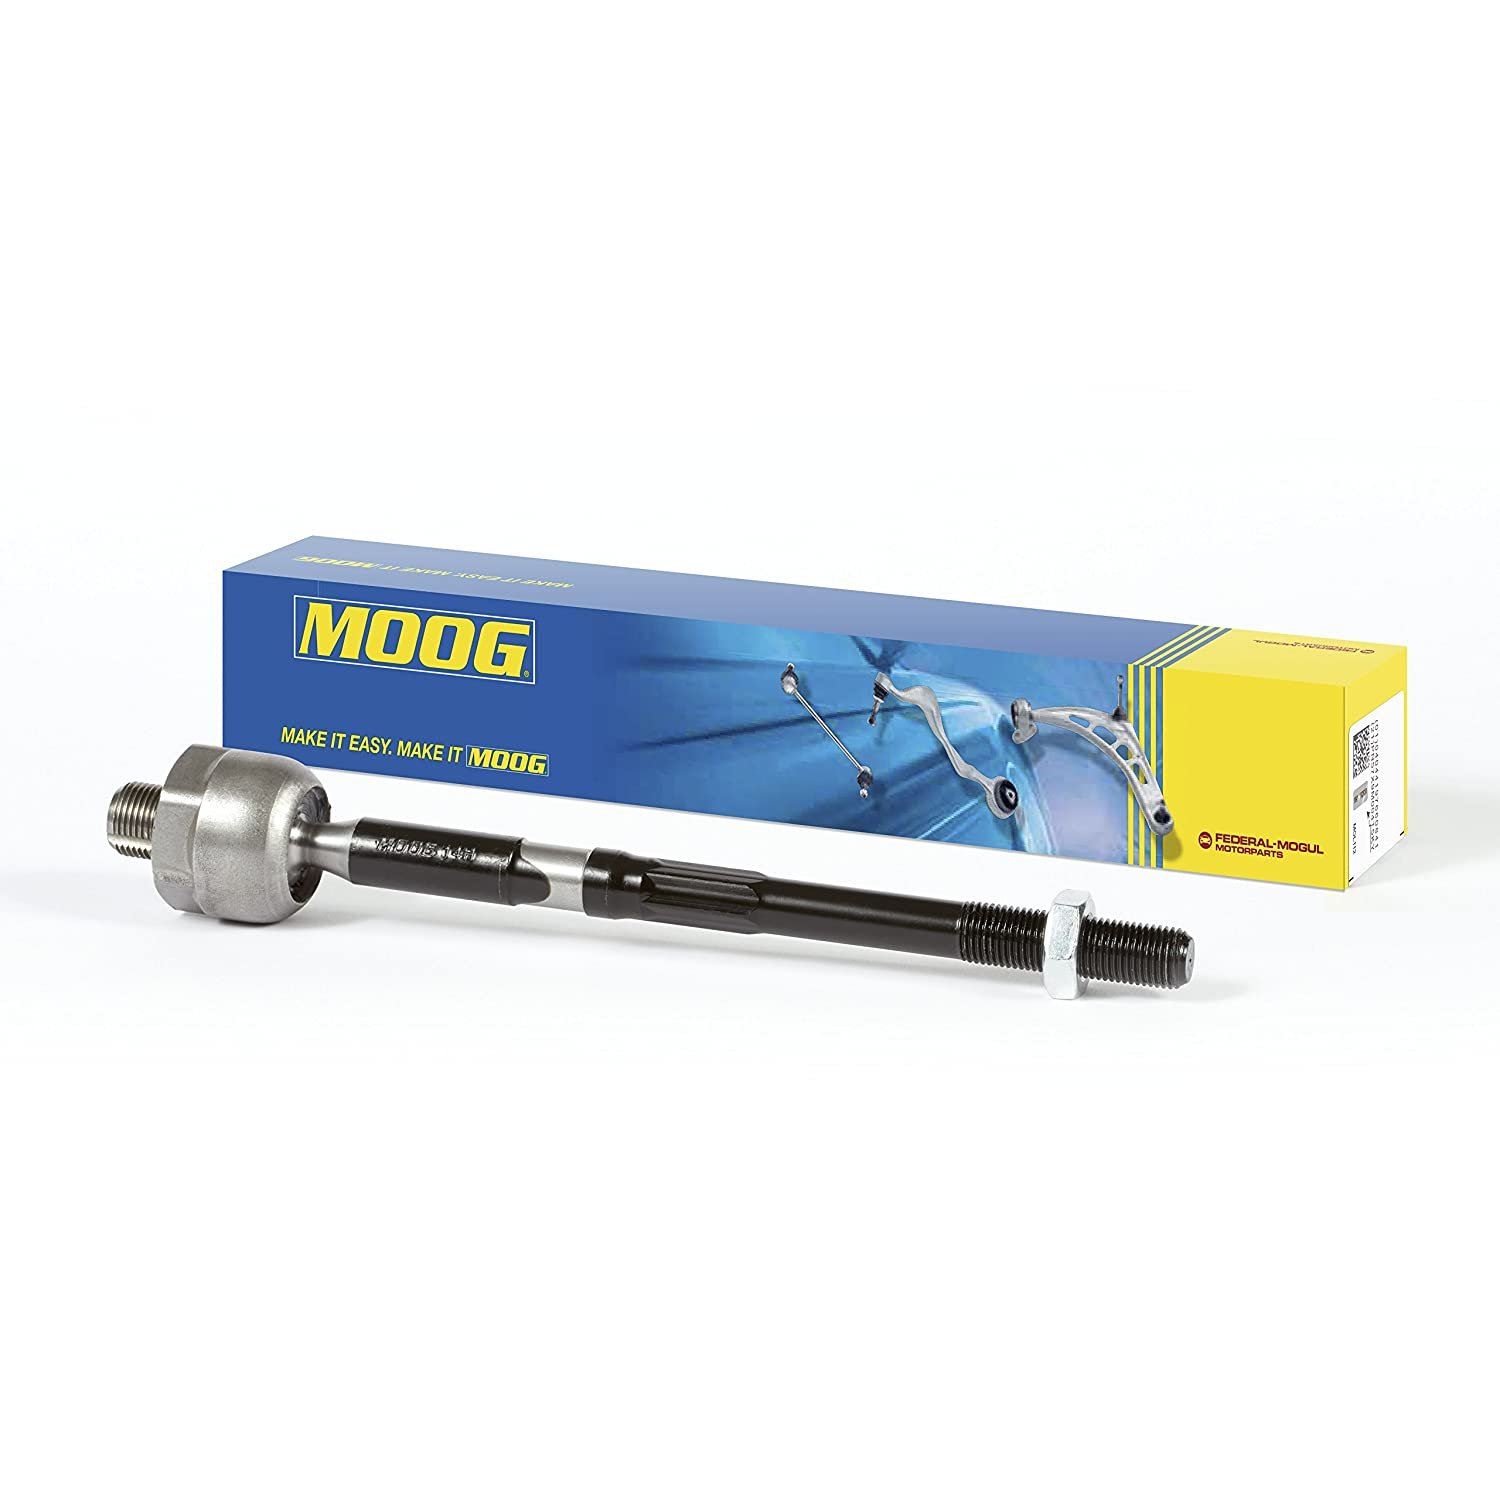 Moog FD-AX-2258 Axial Joint, Tie Rod Federal-Mogul Friction Product GmbH